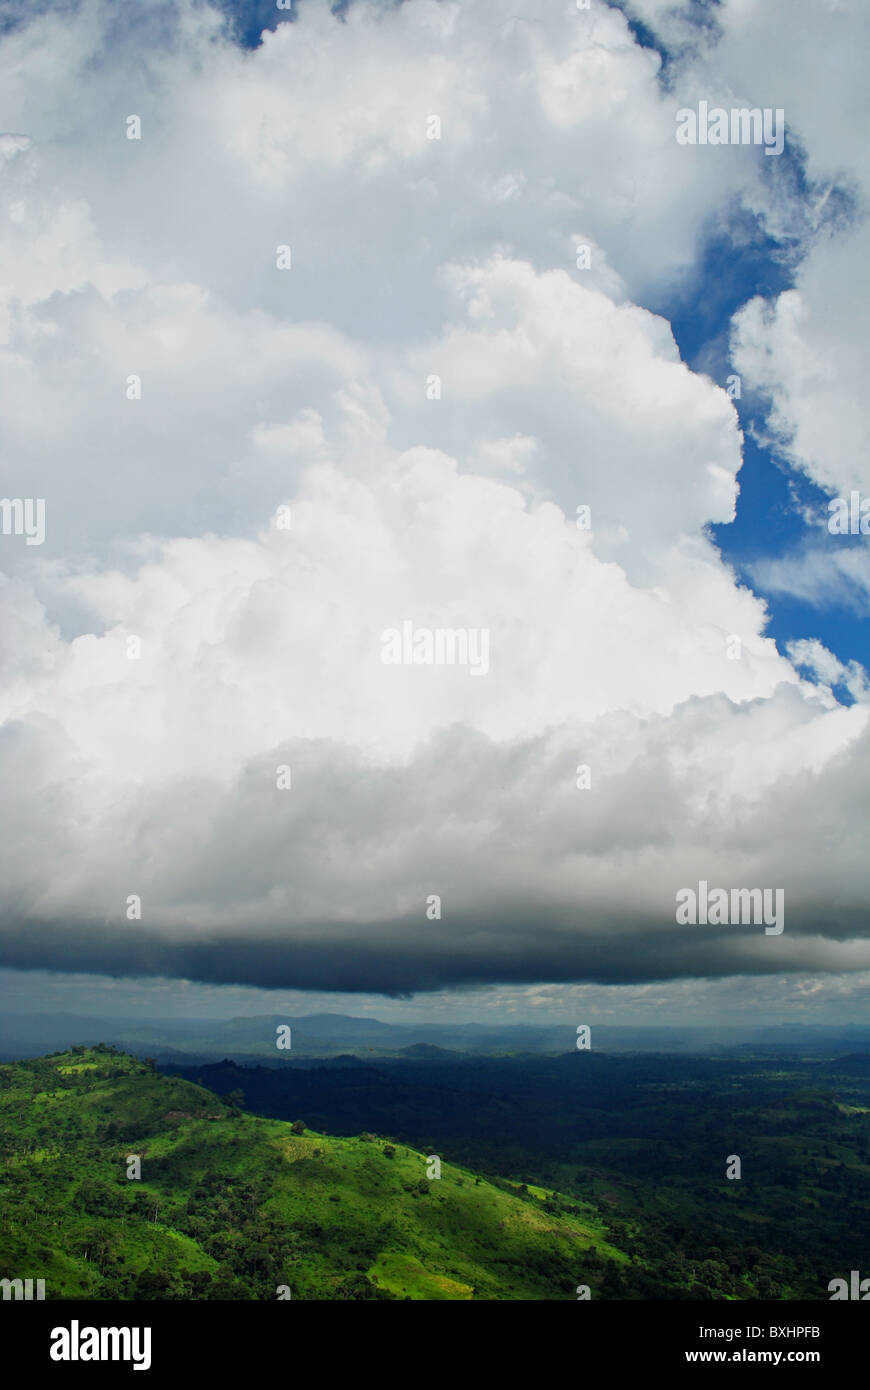 Cumulo-nimbus rainclouds from the side - Ivory Coast, West Africa Stock Photo